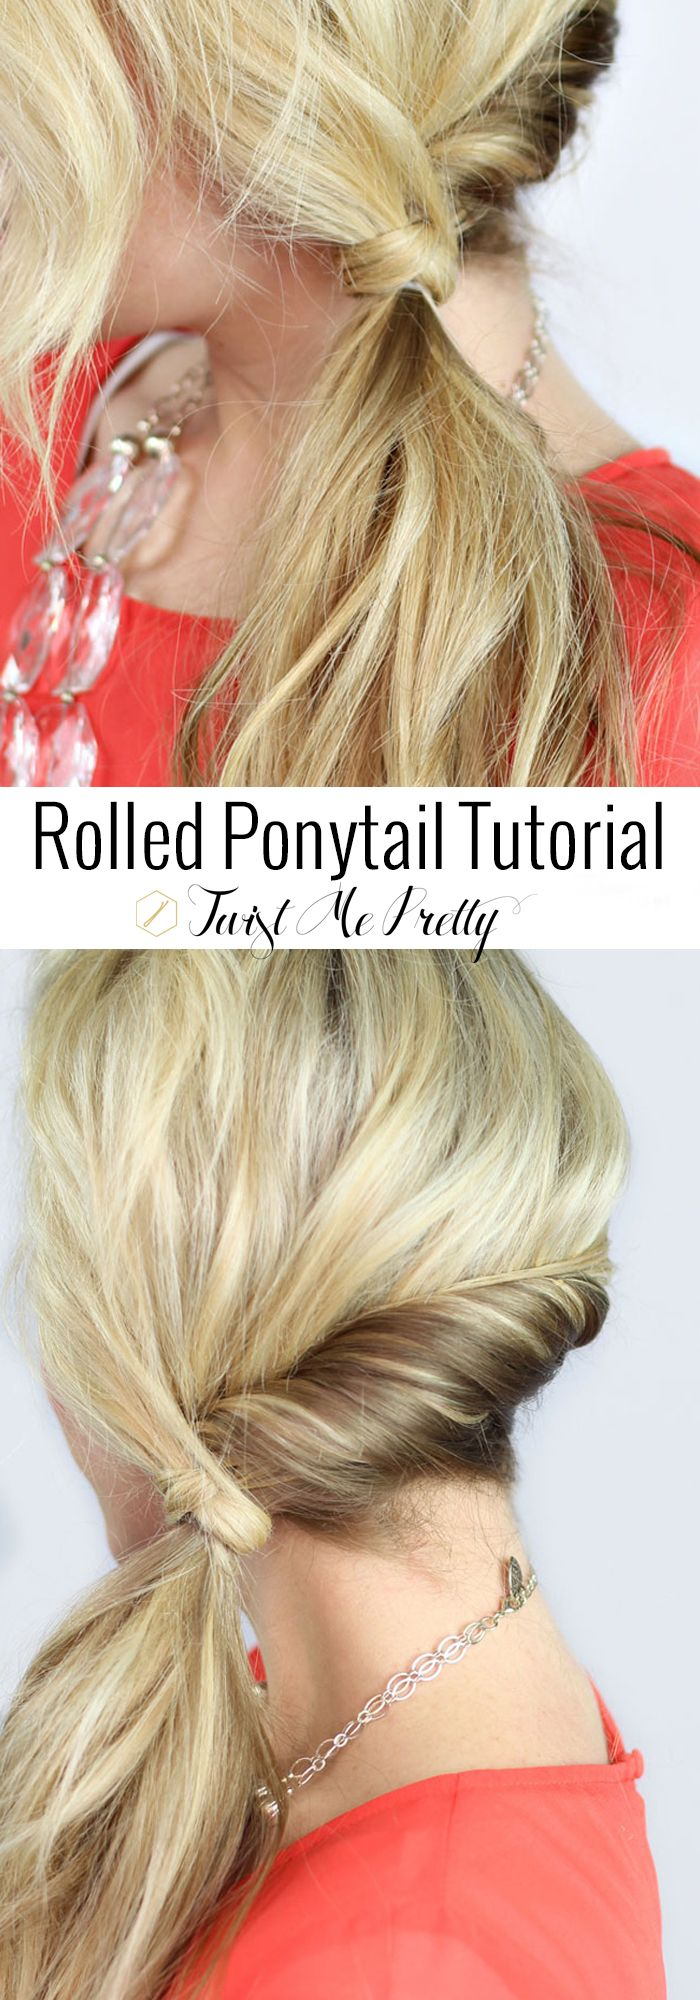 Im such a sucker for a cute ponytail!! Must learn this quick hairstyle asap | Twist Me Pretty